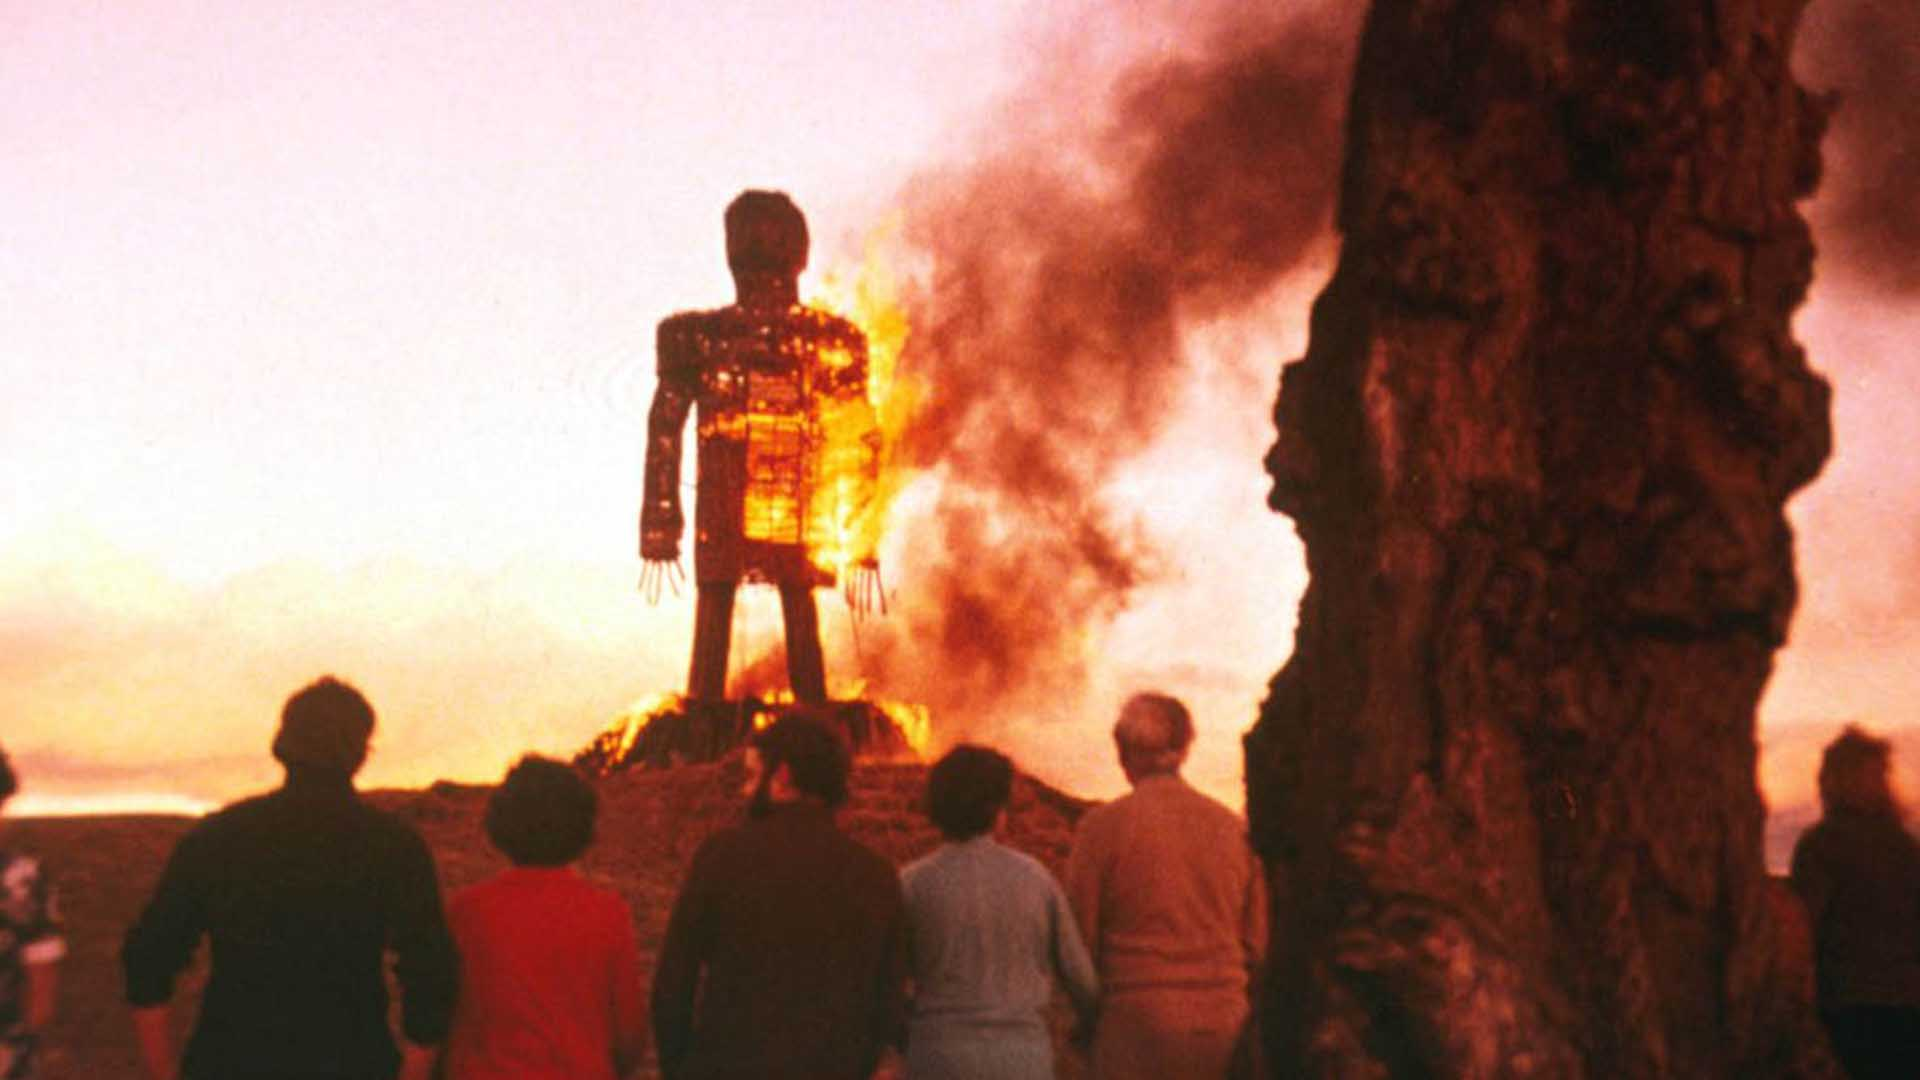 A straw man burning in front of people in The Wicker Man